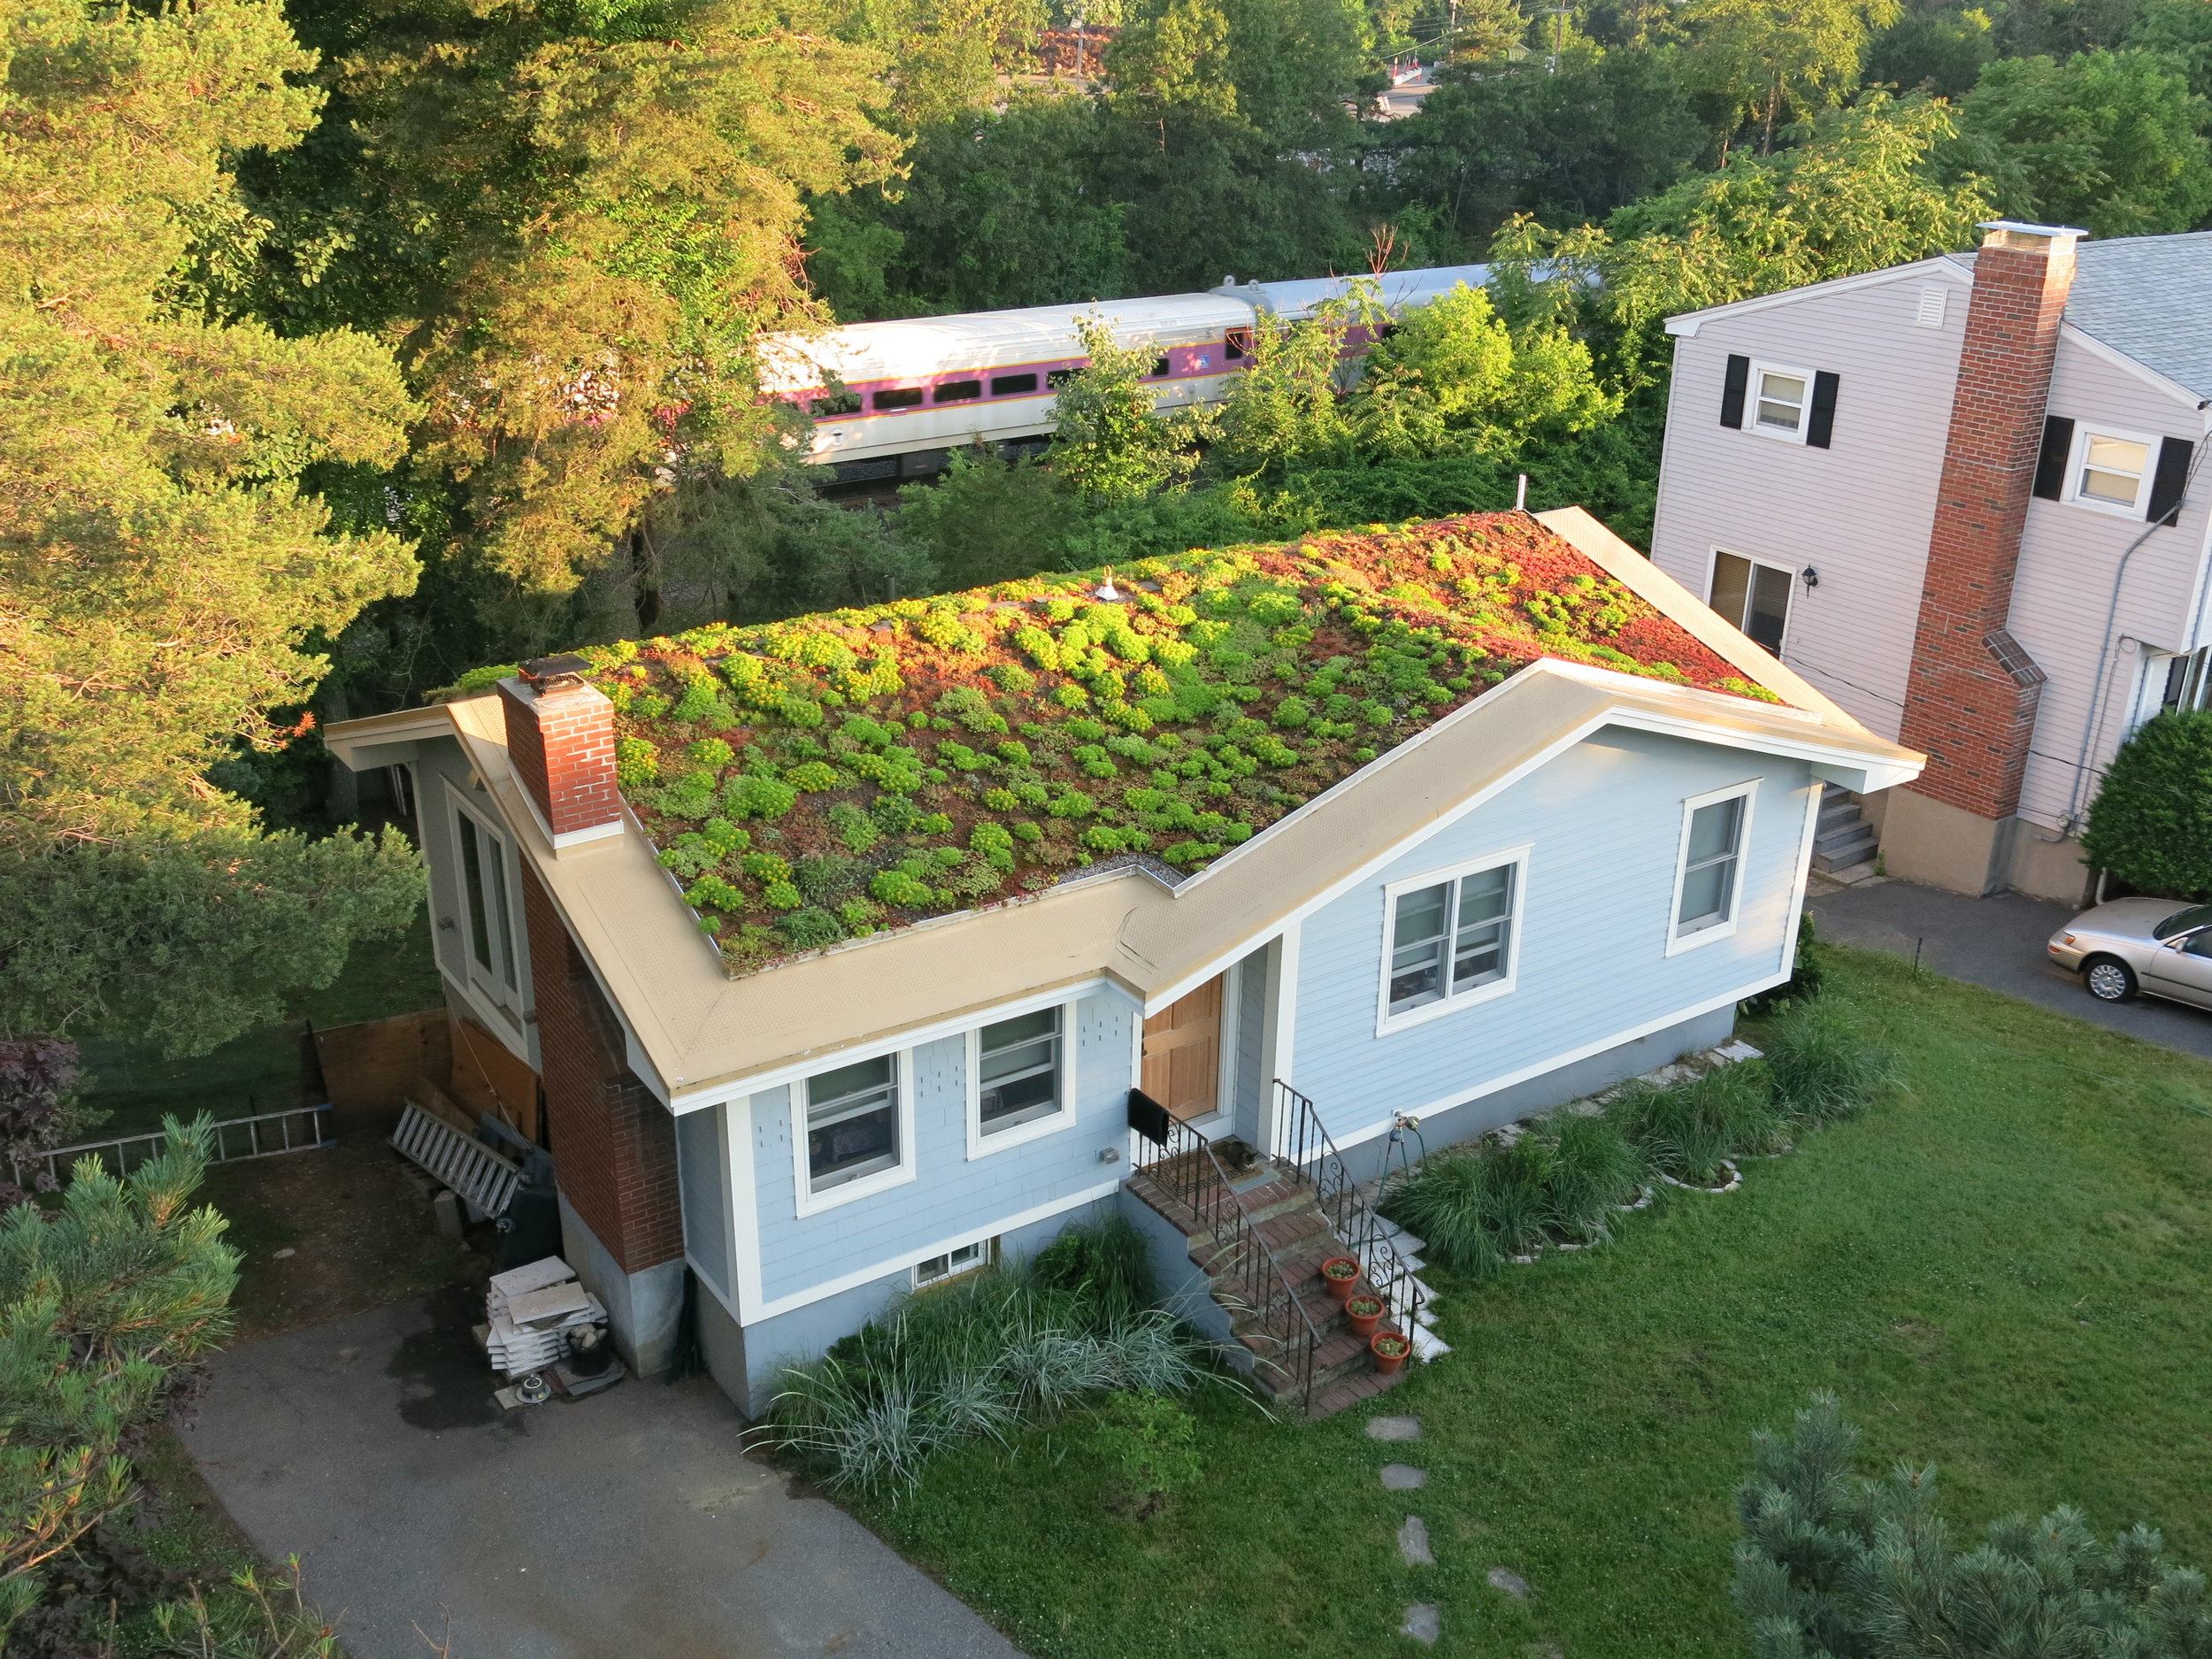 recover-green-roofs-ranch-roof-2012-1.JPG